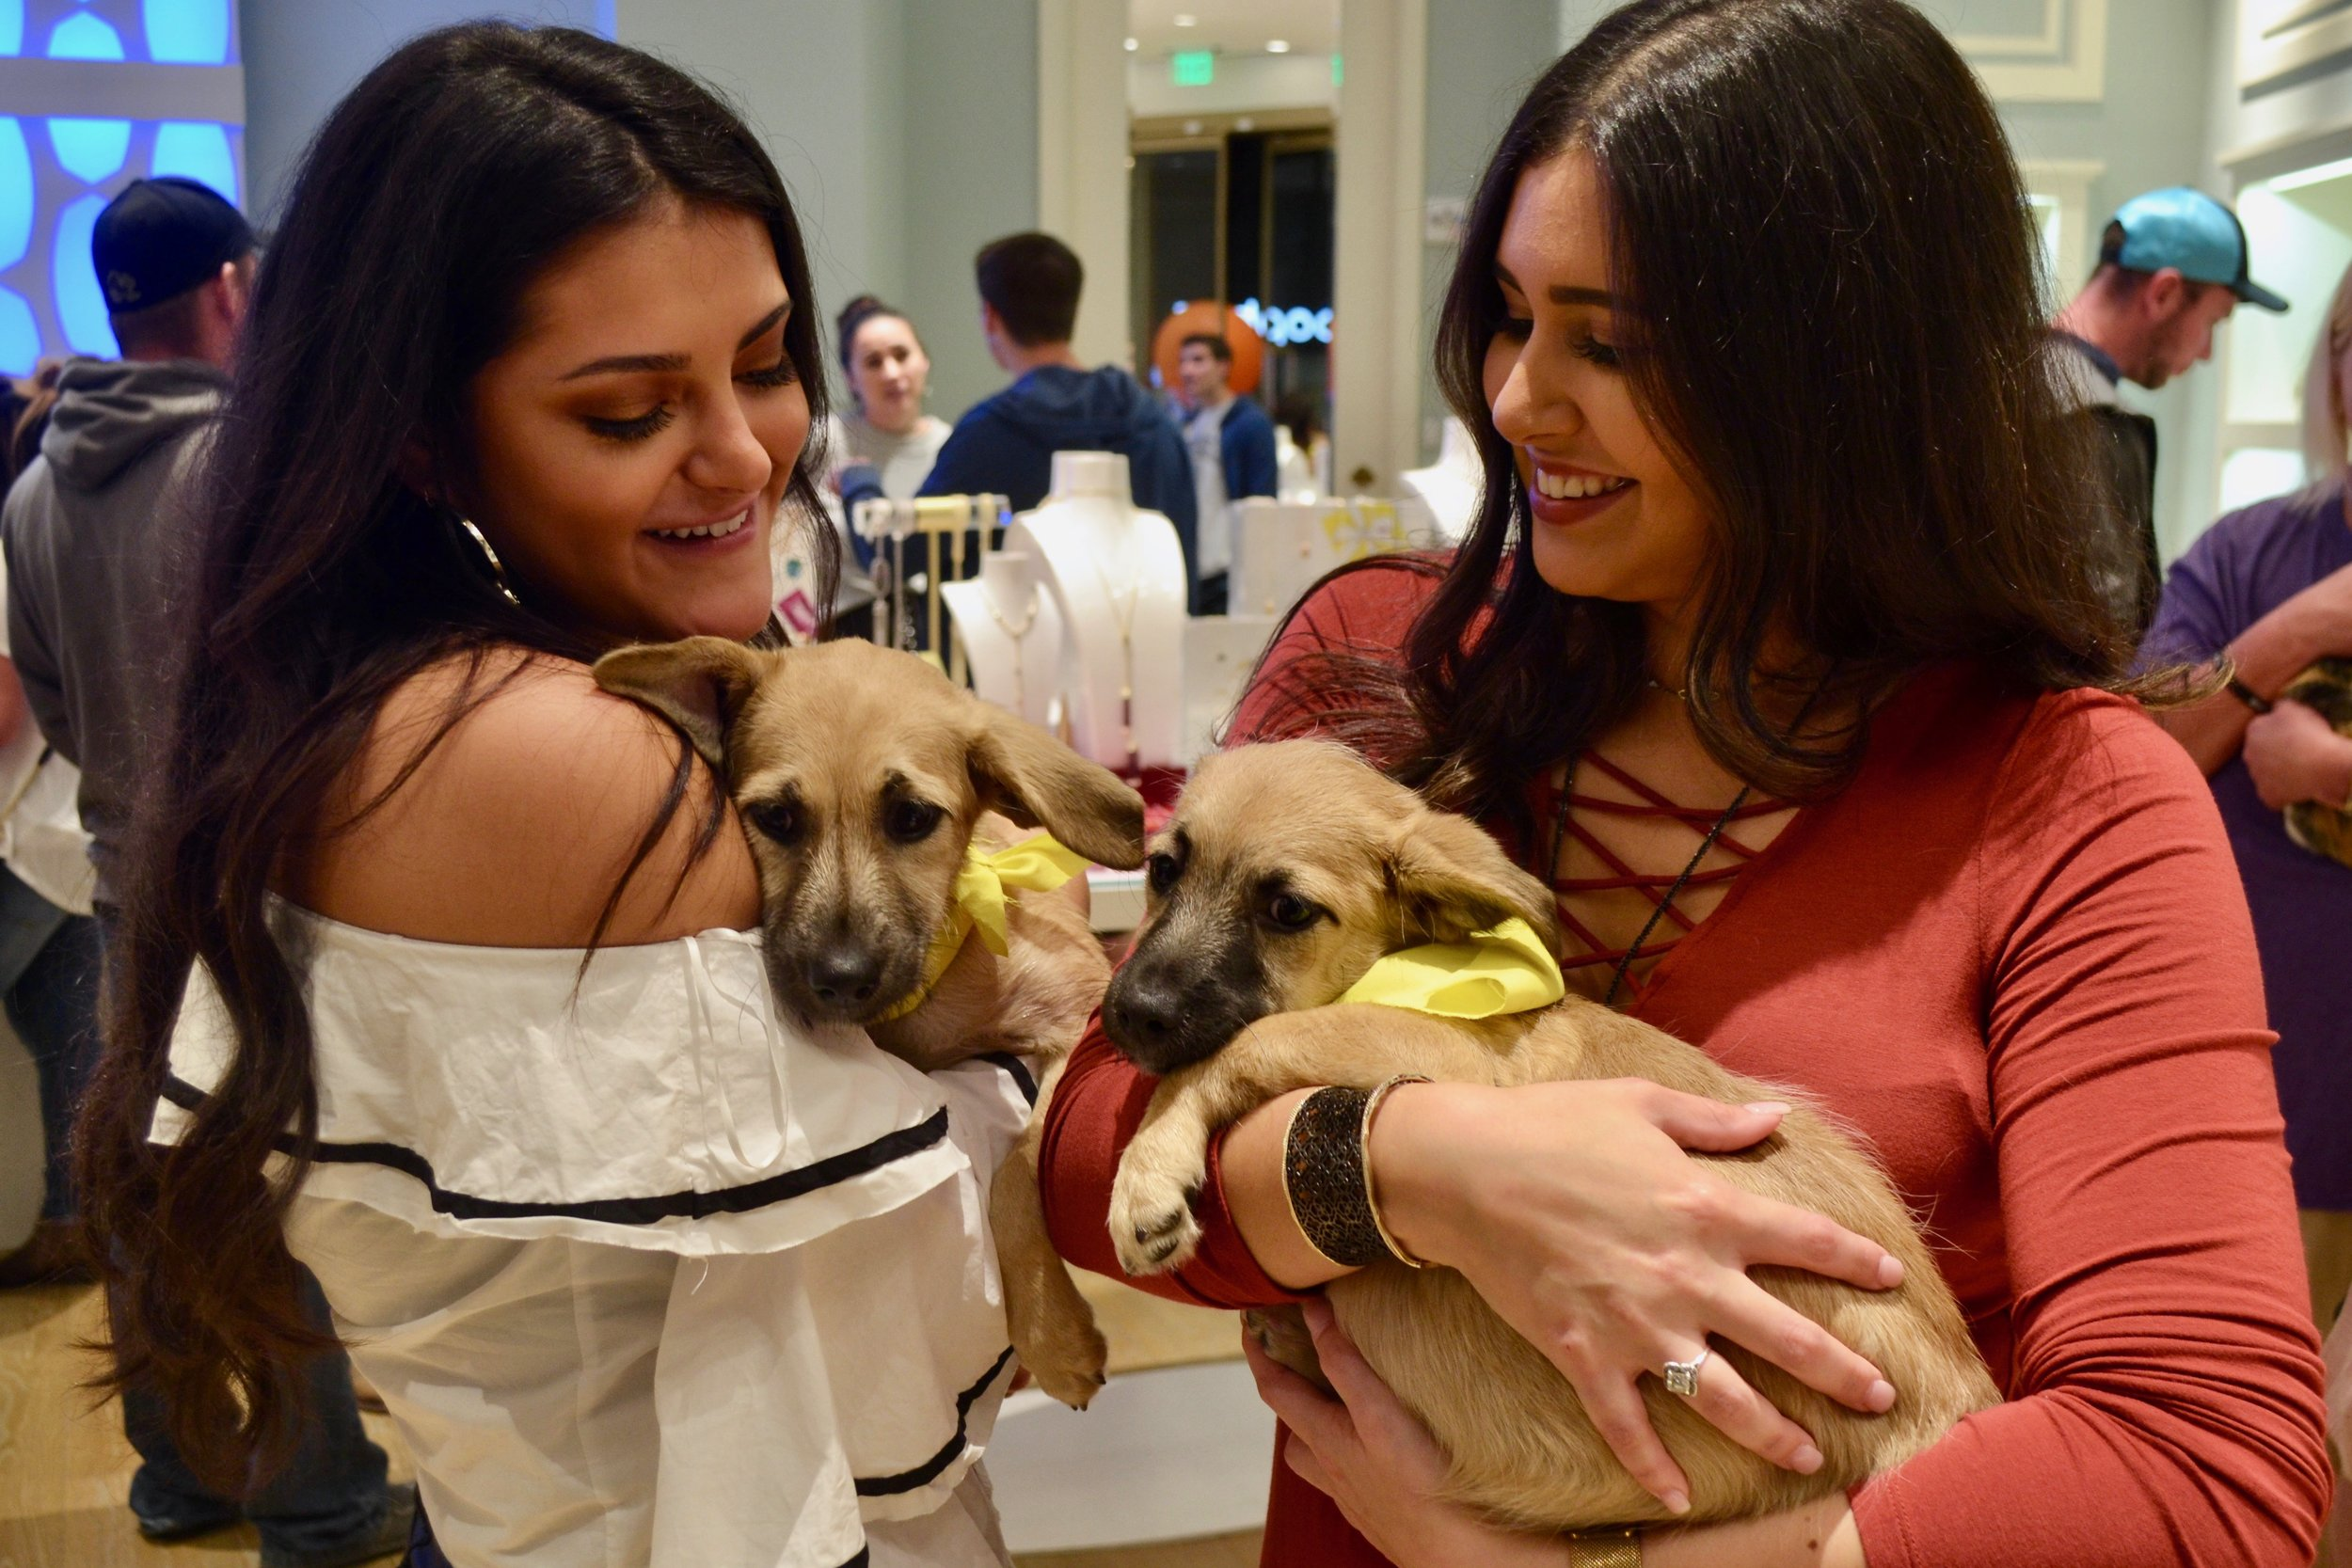 Kendra Scott's employees love our adoption events. Who doesn't love some cuddles and kisses while on the clock? Makes for a happy employee and customer when puppies are involved!